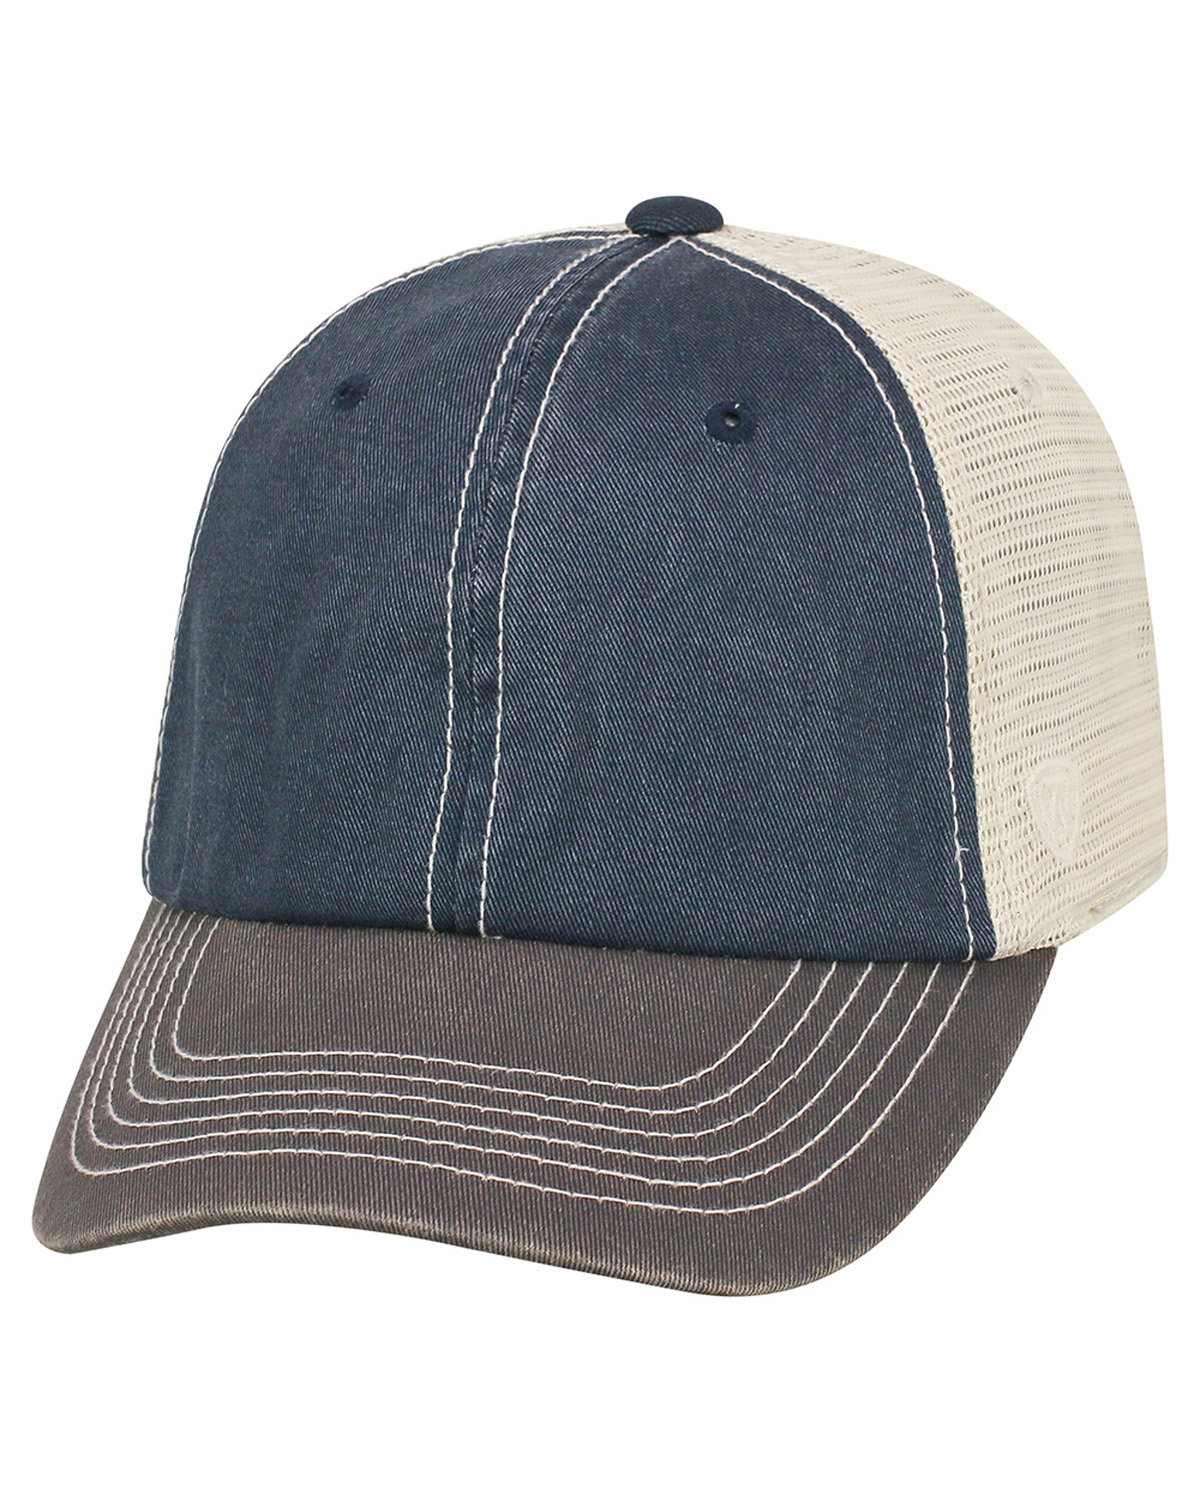 Top Of The World Adult Offroad Cap NAVY